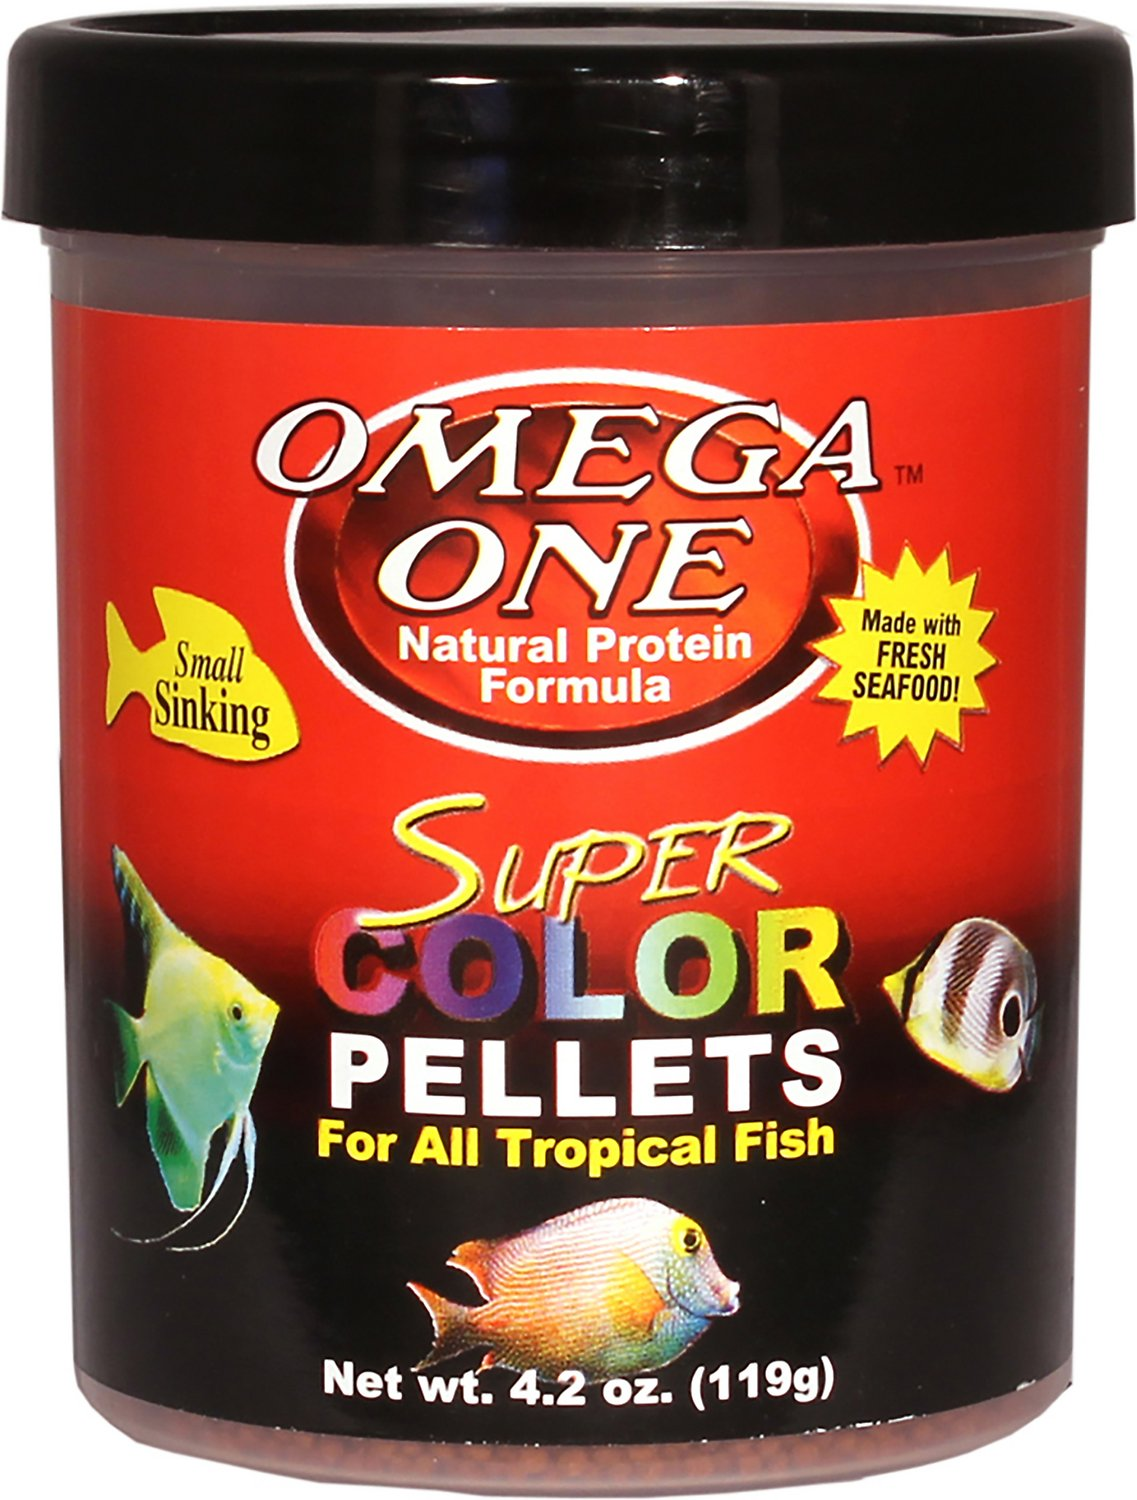 Omega one super color sinking pellets tropical fish food for Omega one fish food